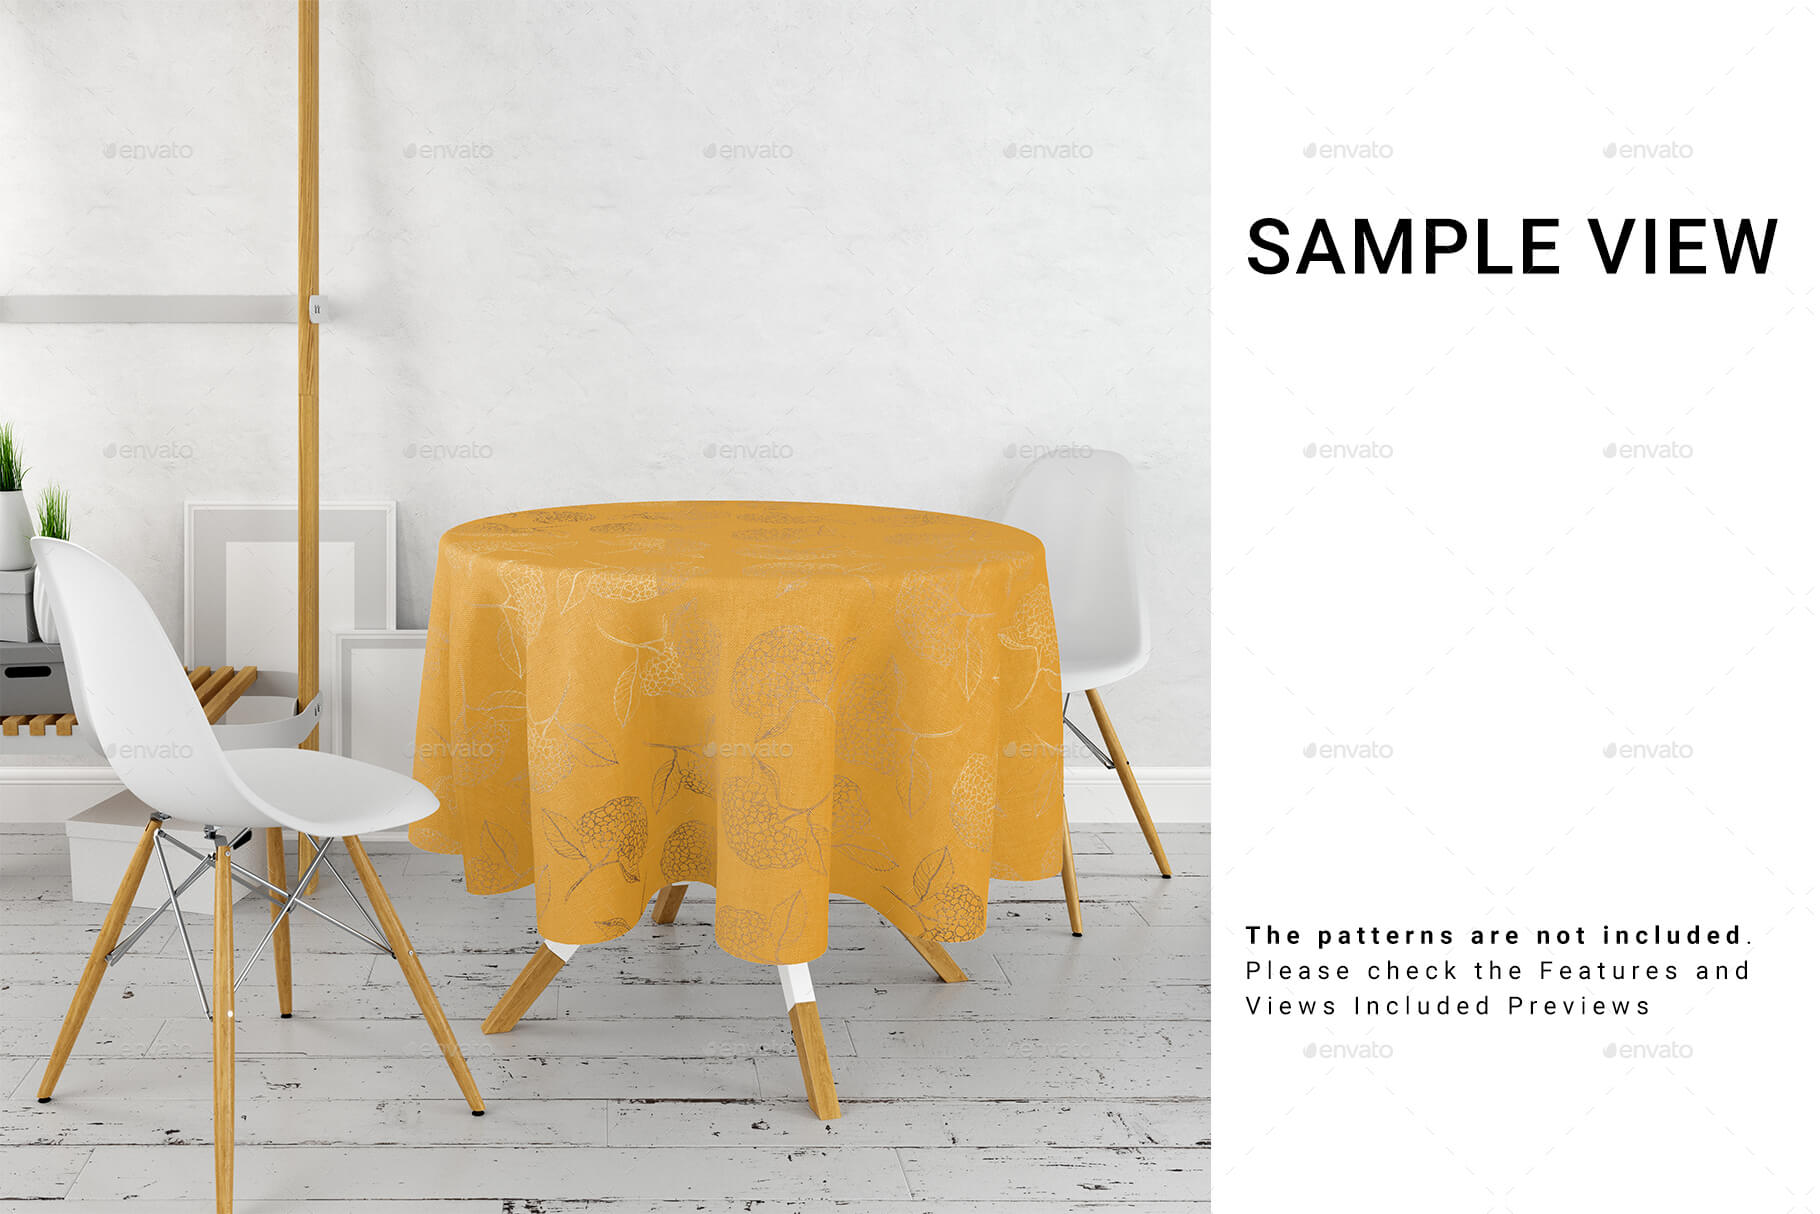 Round Tablecloth in Kitchen Mockup Set